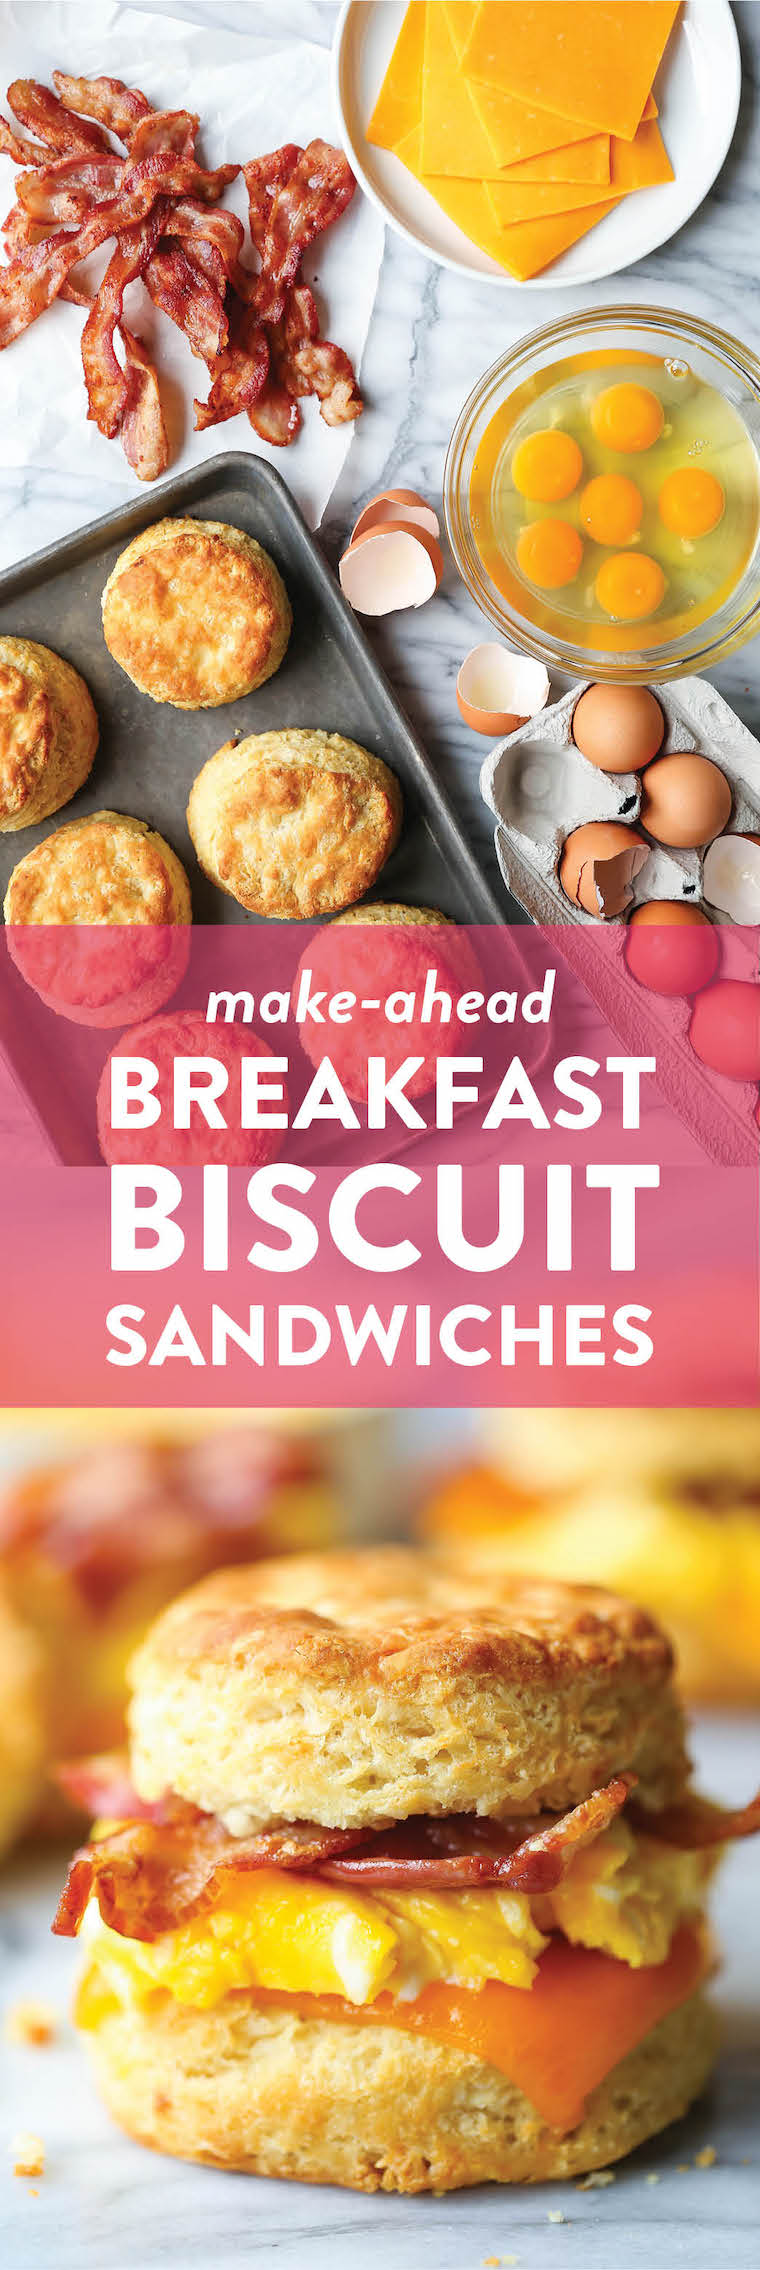 make ahead breakfast biscuit sandwiches recipe make ahead breakfast breakfast biscuits biscuit sandwich pinterest